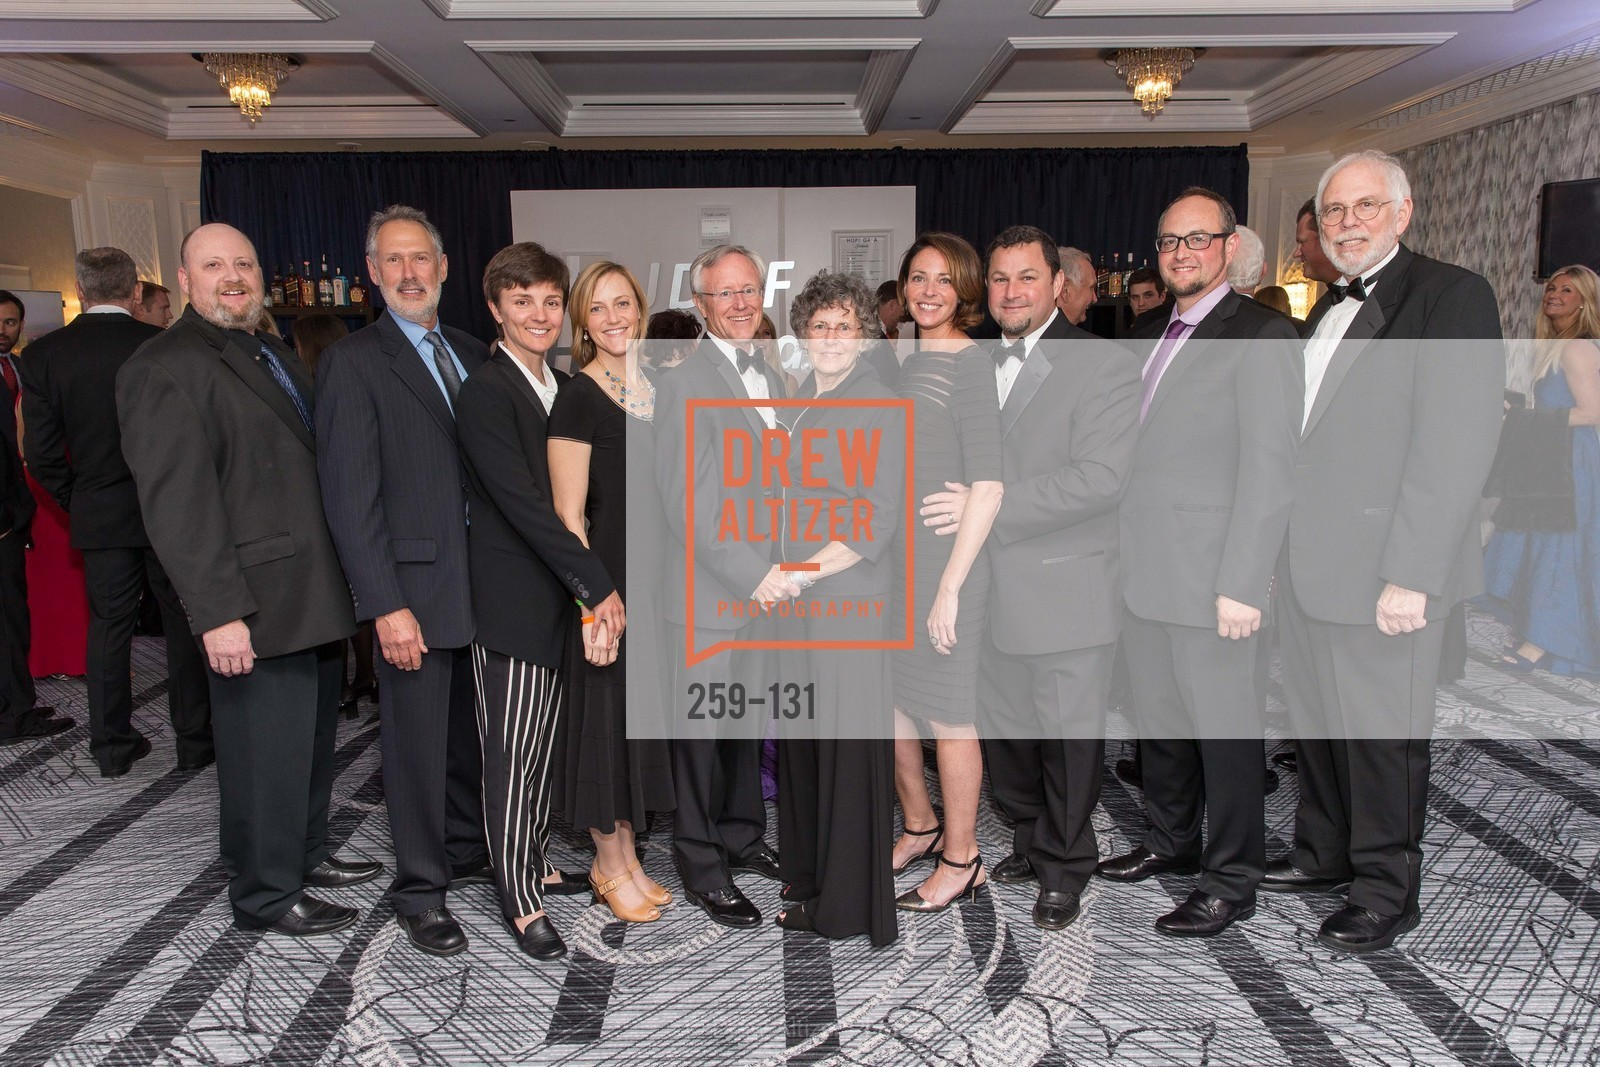 Matthew Cohen, David Shatkin, Katerina Blinova, Emily Coles, Dayton Coles, Sheri Coles, Jessica Berry, Mike Berry, Chip Kurtzman, JUVENILE DIABETES RESEARCH FOUNDATION  Hope Gala, The Ritz-Carlton, May 29th, 2015,Drew Altizer, Drew Altizer Photography, full-service agency, private events, San Francisco photographer, photographer california